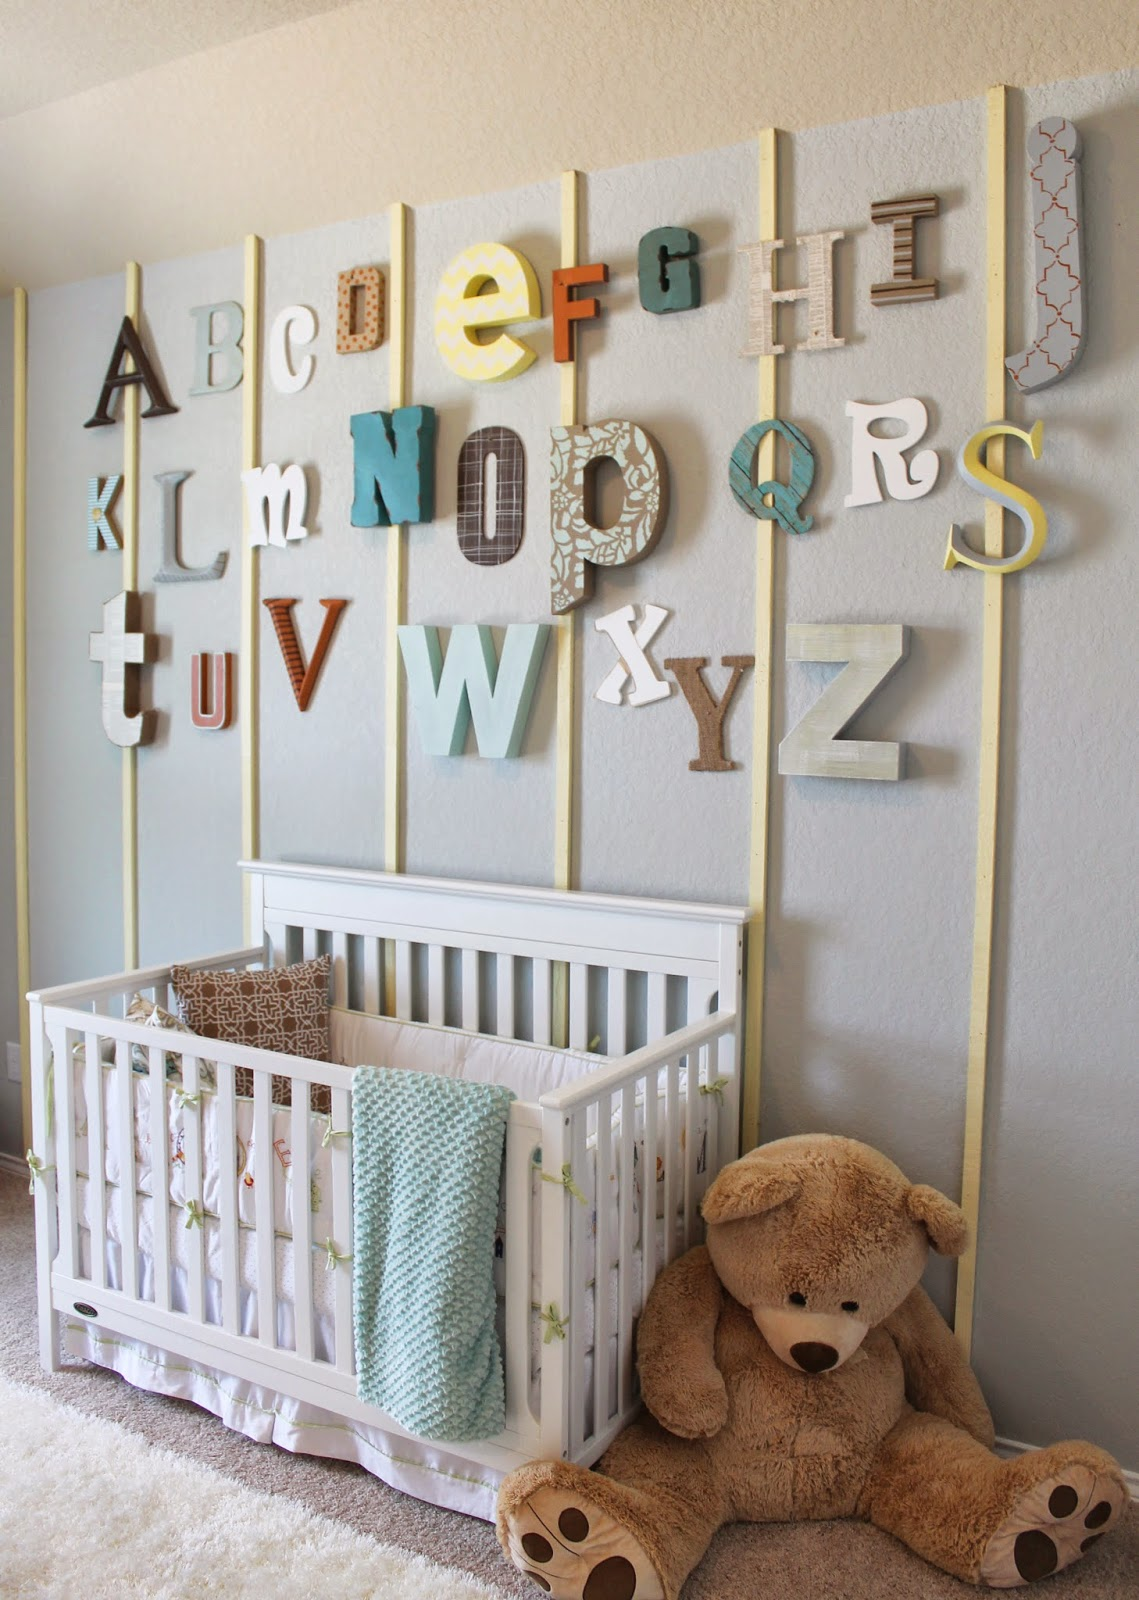 How To Decorate Your Letters? Part 60